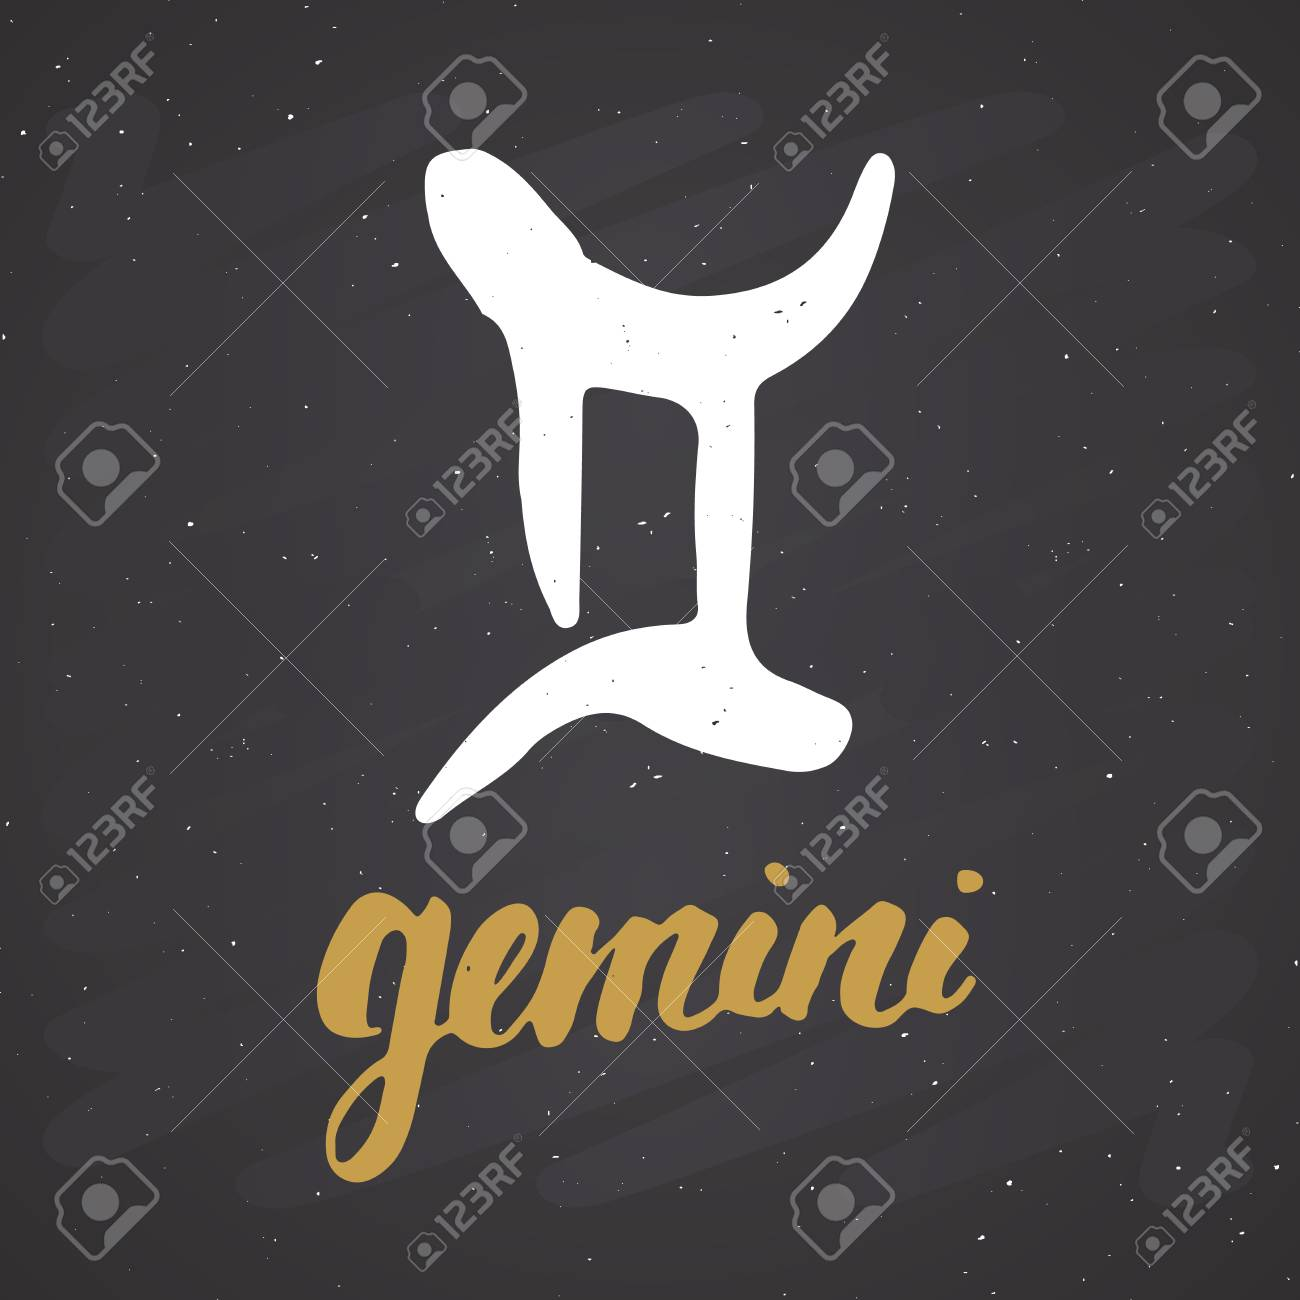 vector zodiac sign gemini and lettering hand drawn horoscope astrology symbol grunge textured design typography print vector illustration on